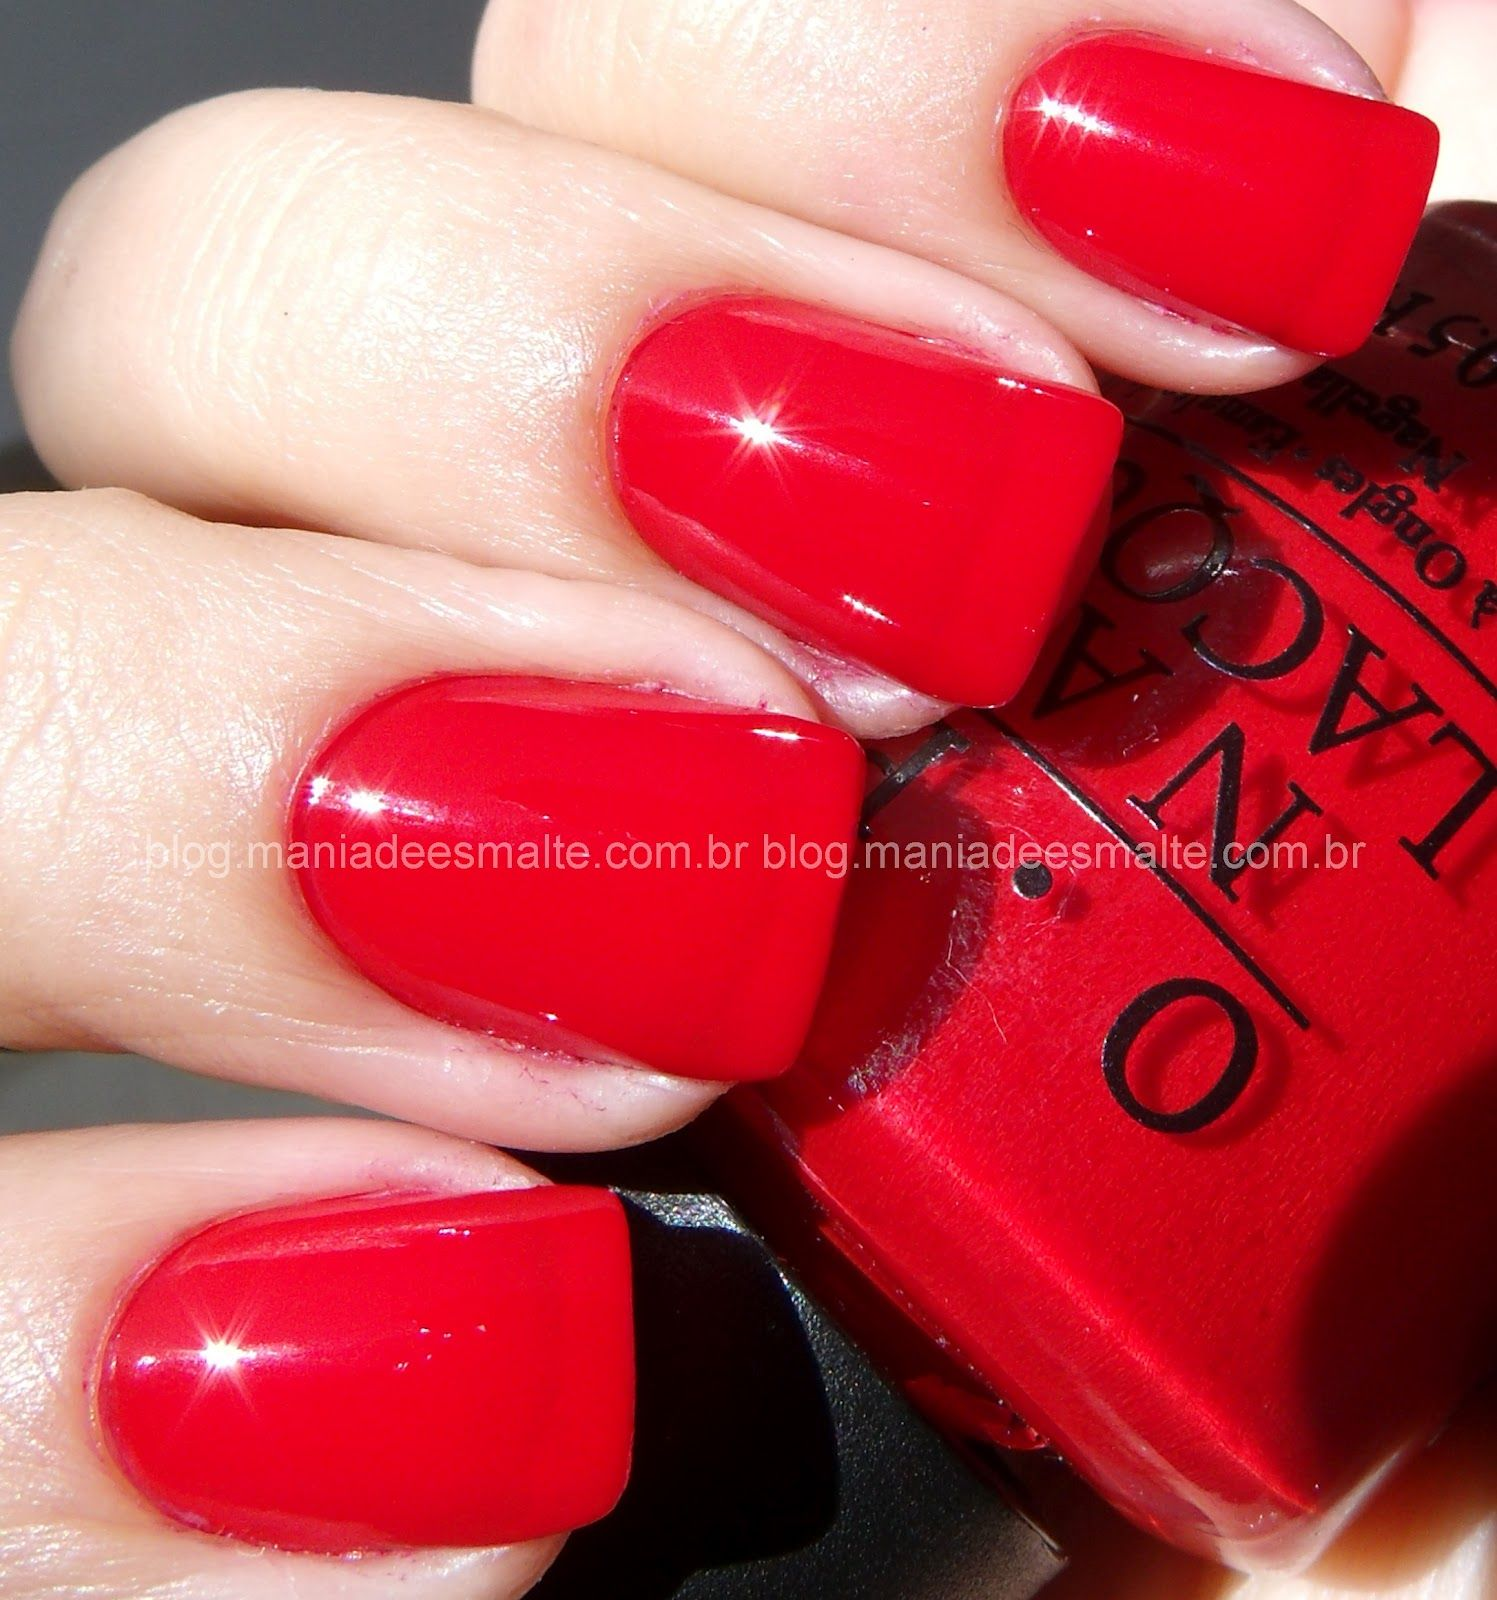 OPI thrill of brazil: for special occasions | Products I Love ...